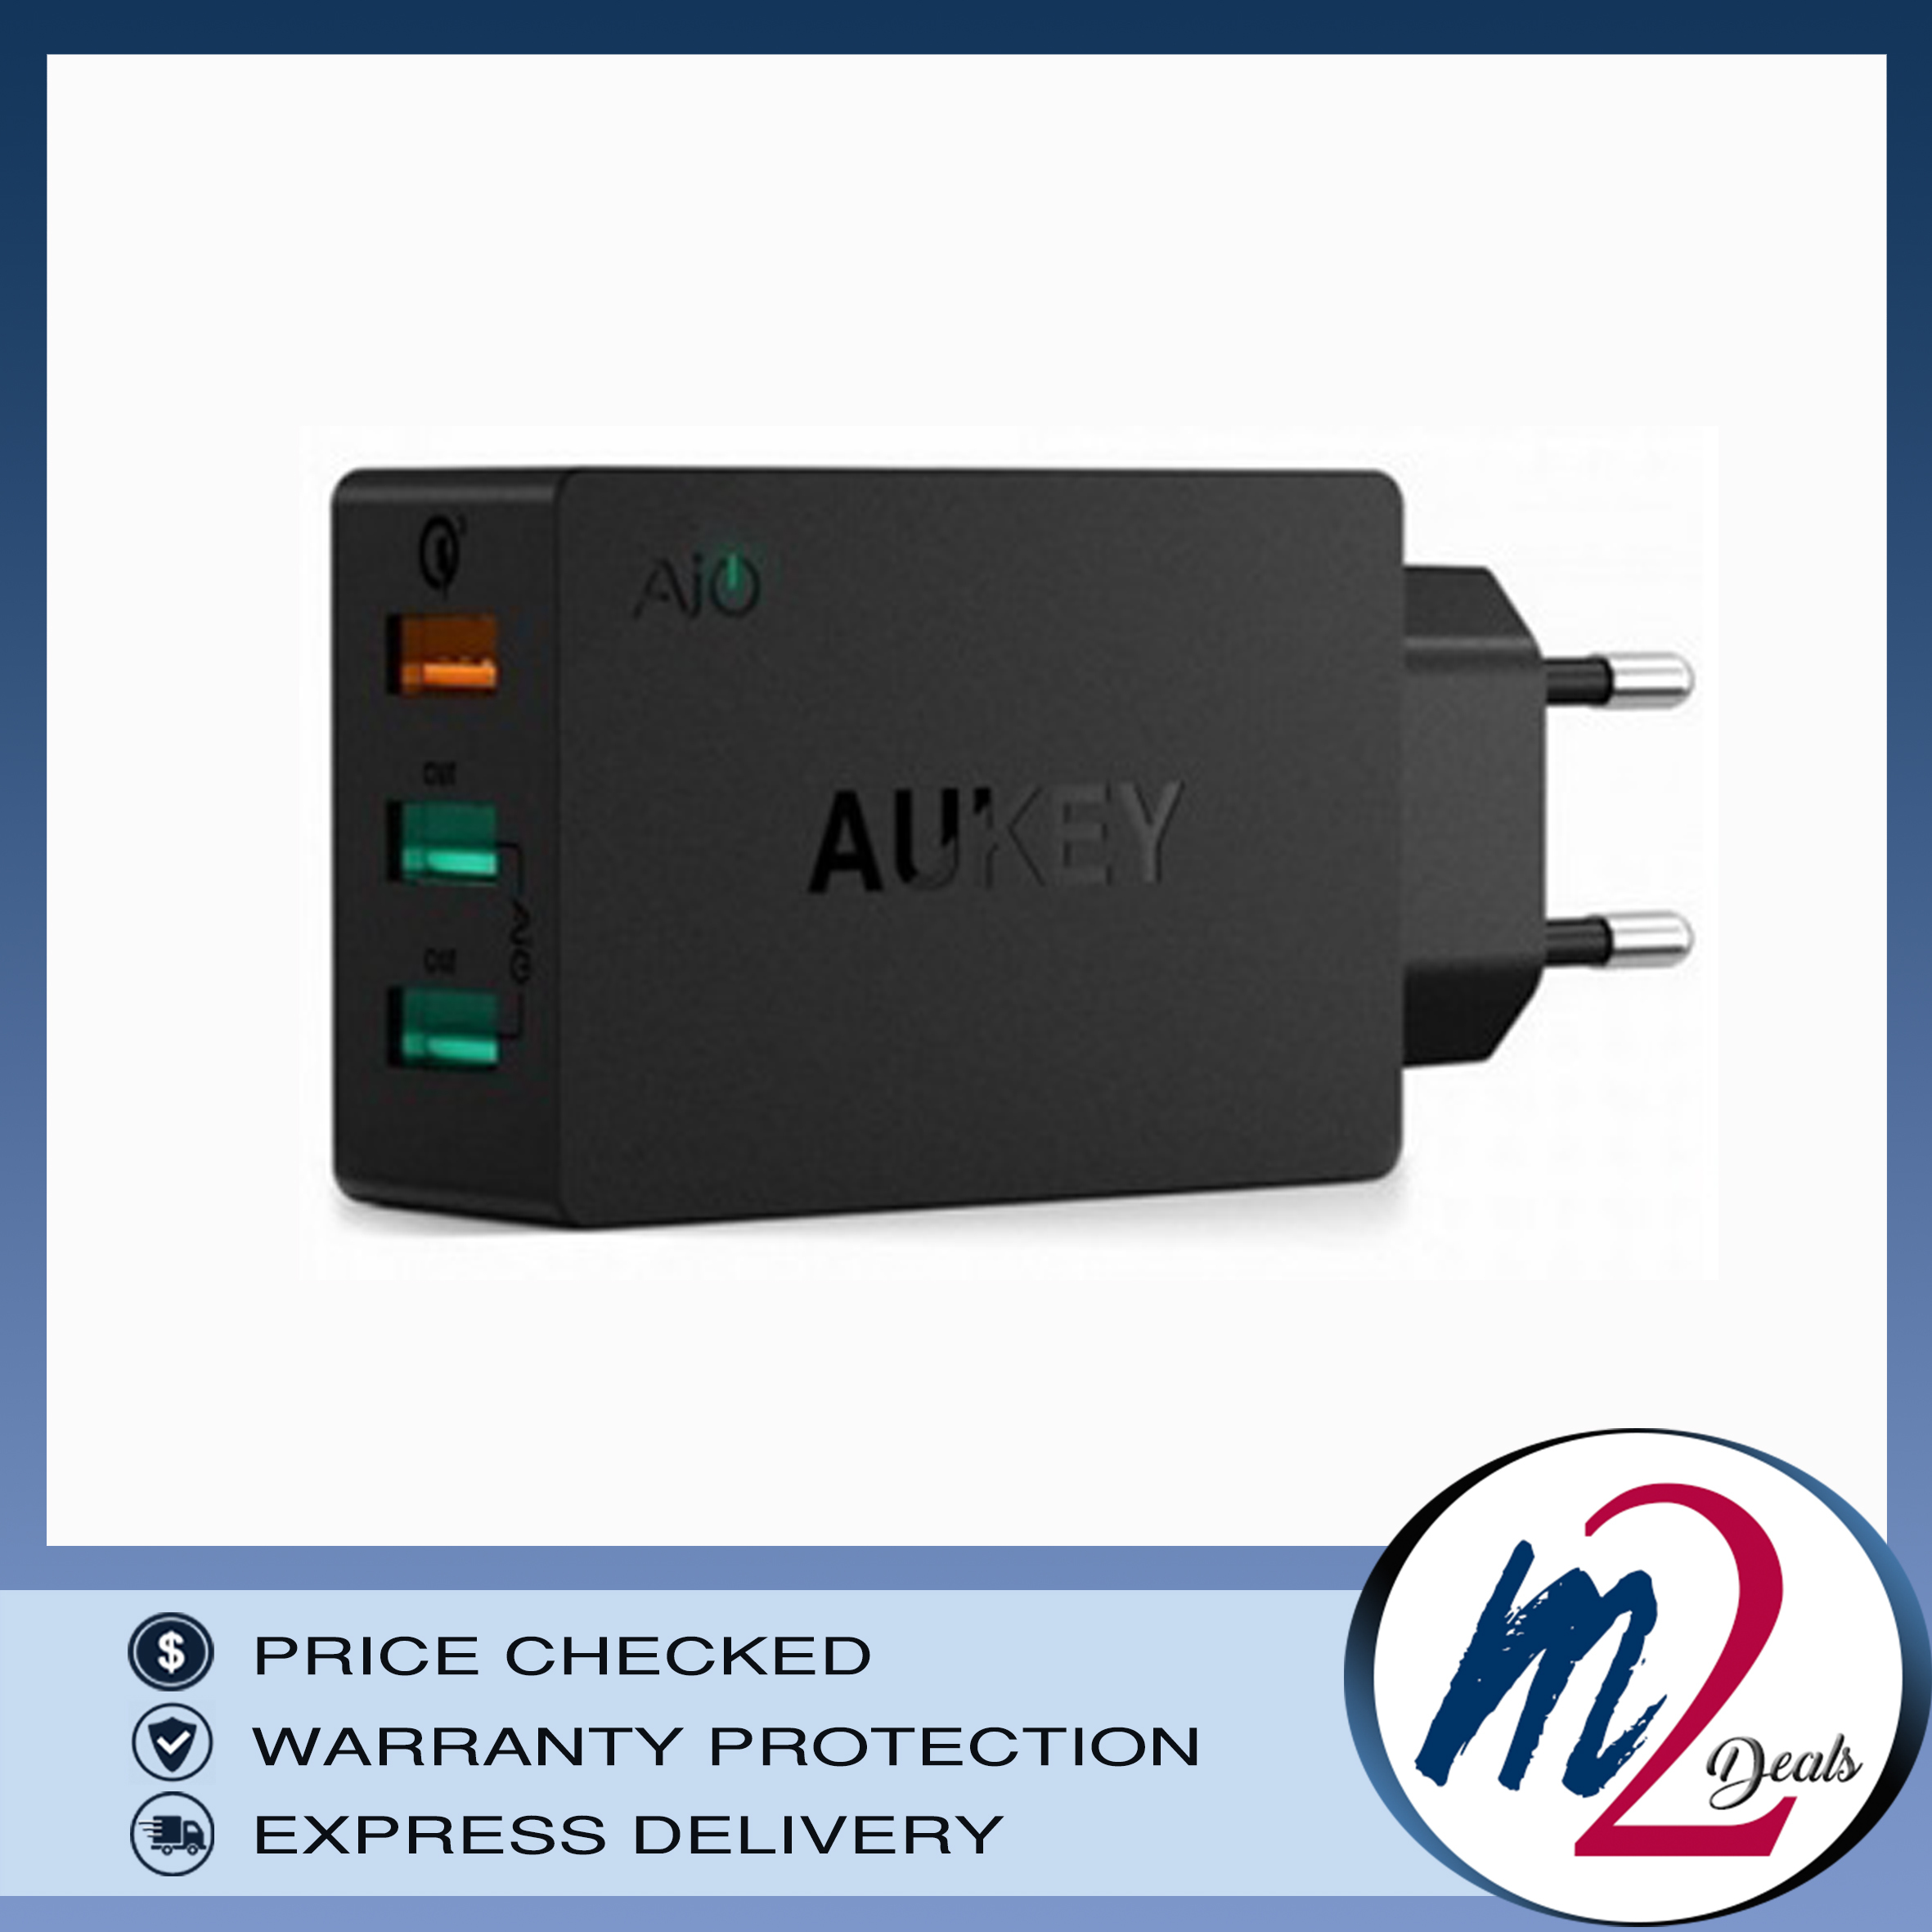 Aukey 3 Usb Port Qualcomm Quick Charge 30 Wall Charger Pa T14 Travel Home Adaptor Turbo T9 Original 3port 42w 2x24a Ai Qc3